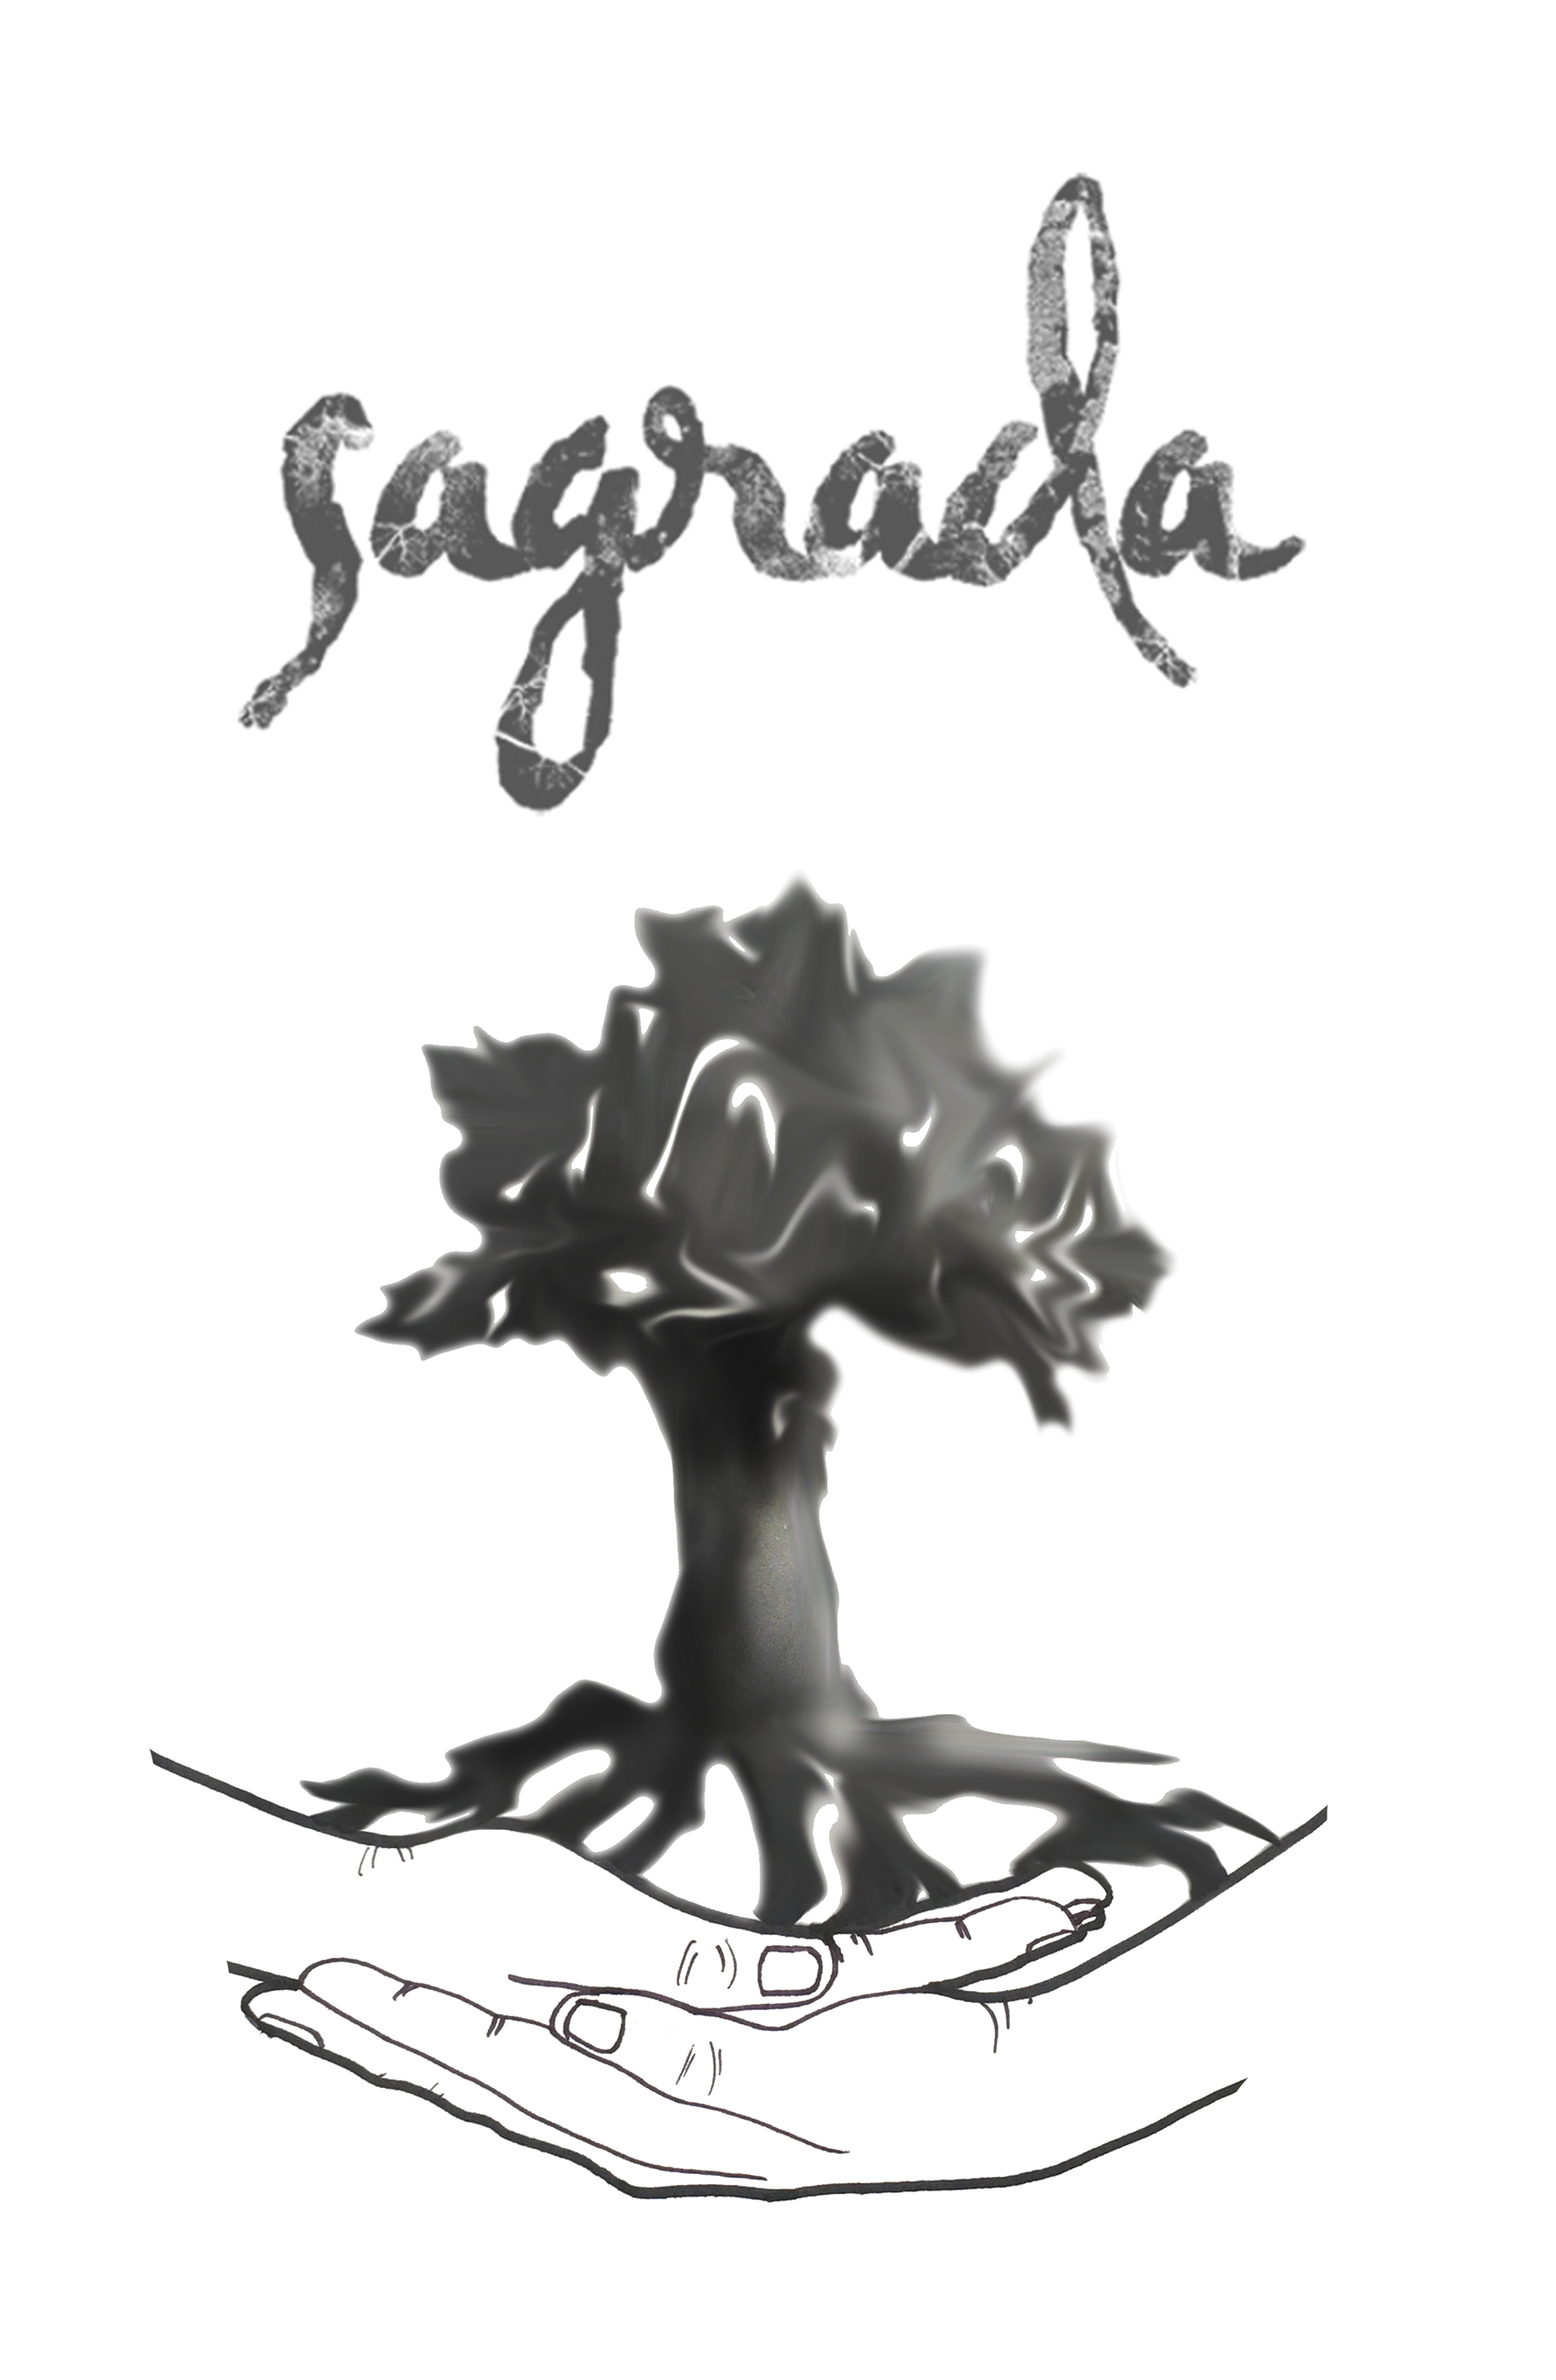 Sagrada_T-shirt_design.jpg